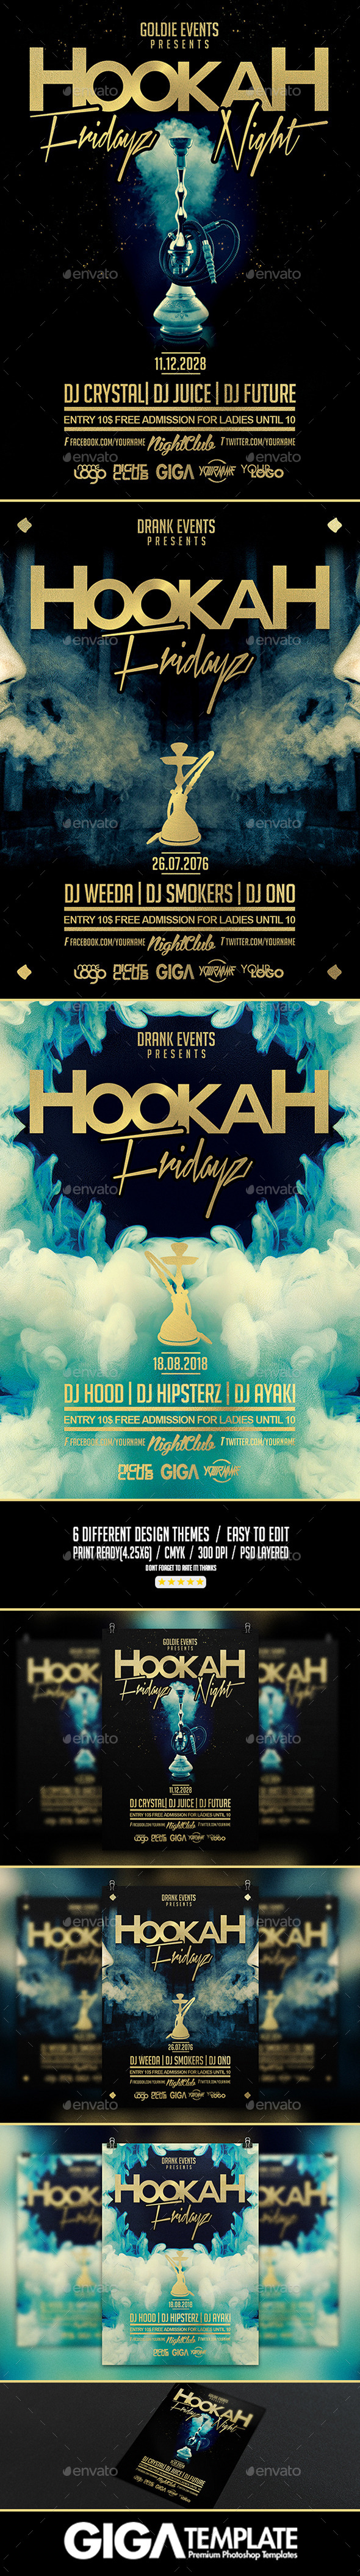 GraphicRiver Hookah Fridayz Night Party PSD Flyer Template 10843732